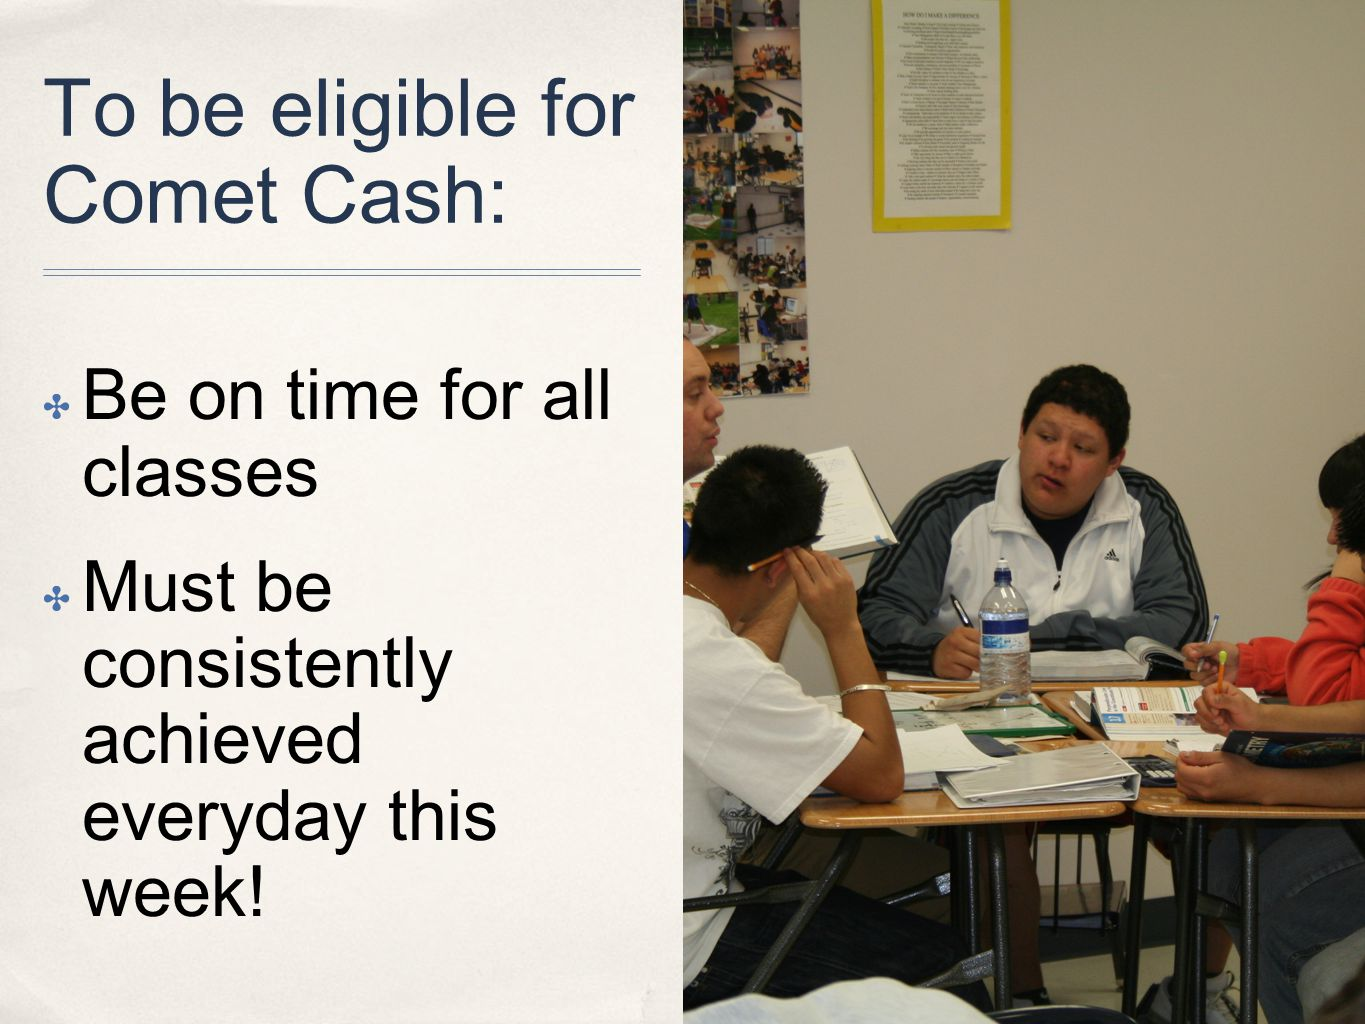 To be eligible for Comet Cash: ✤ Be on time for all classes ✤ Must be consistently achieved everyday this week!